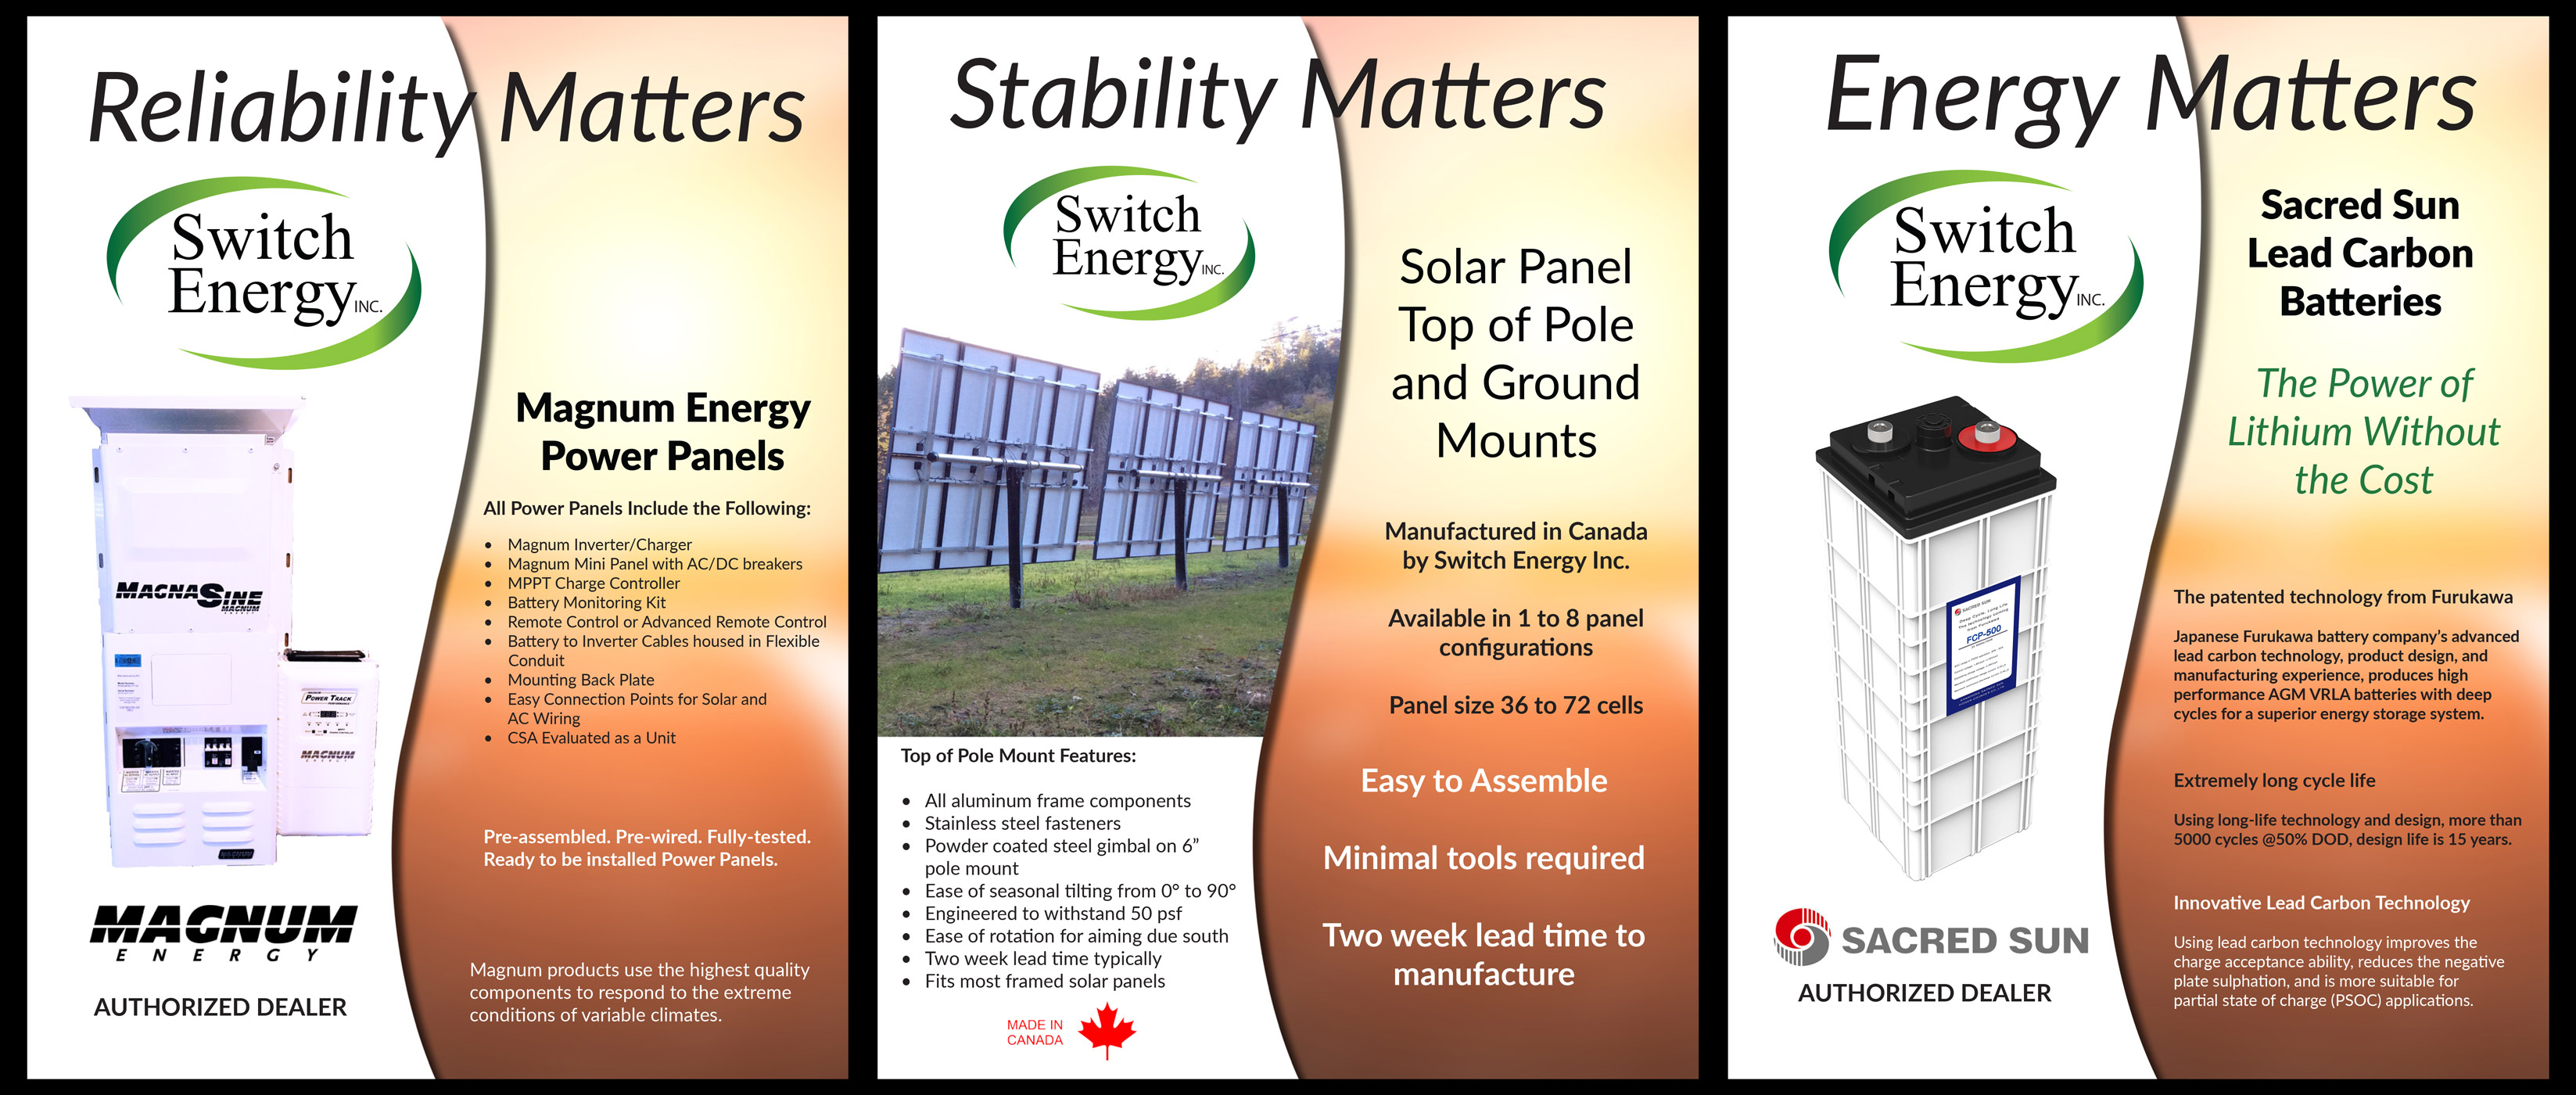 Switch Energy a leader among solar energy companies